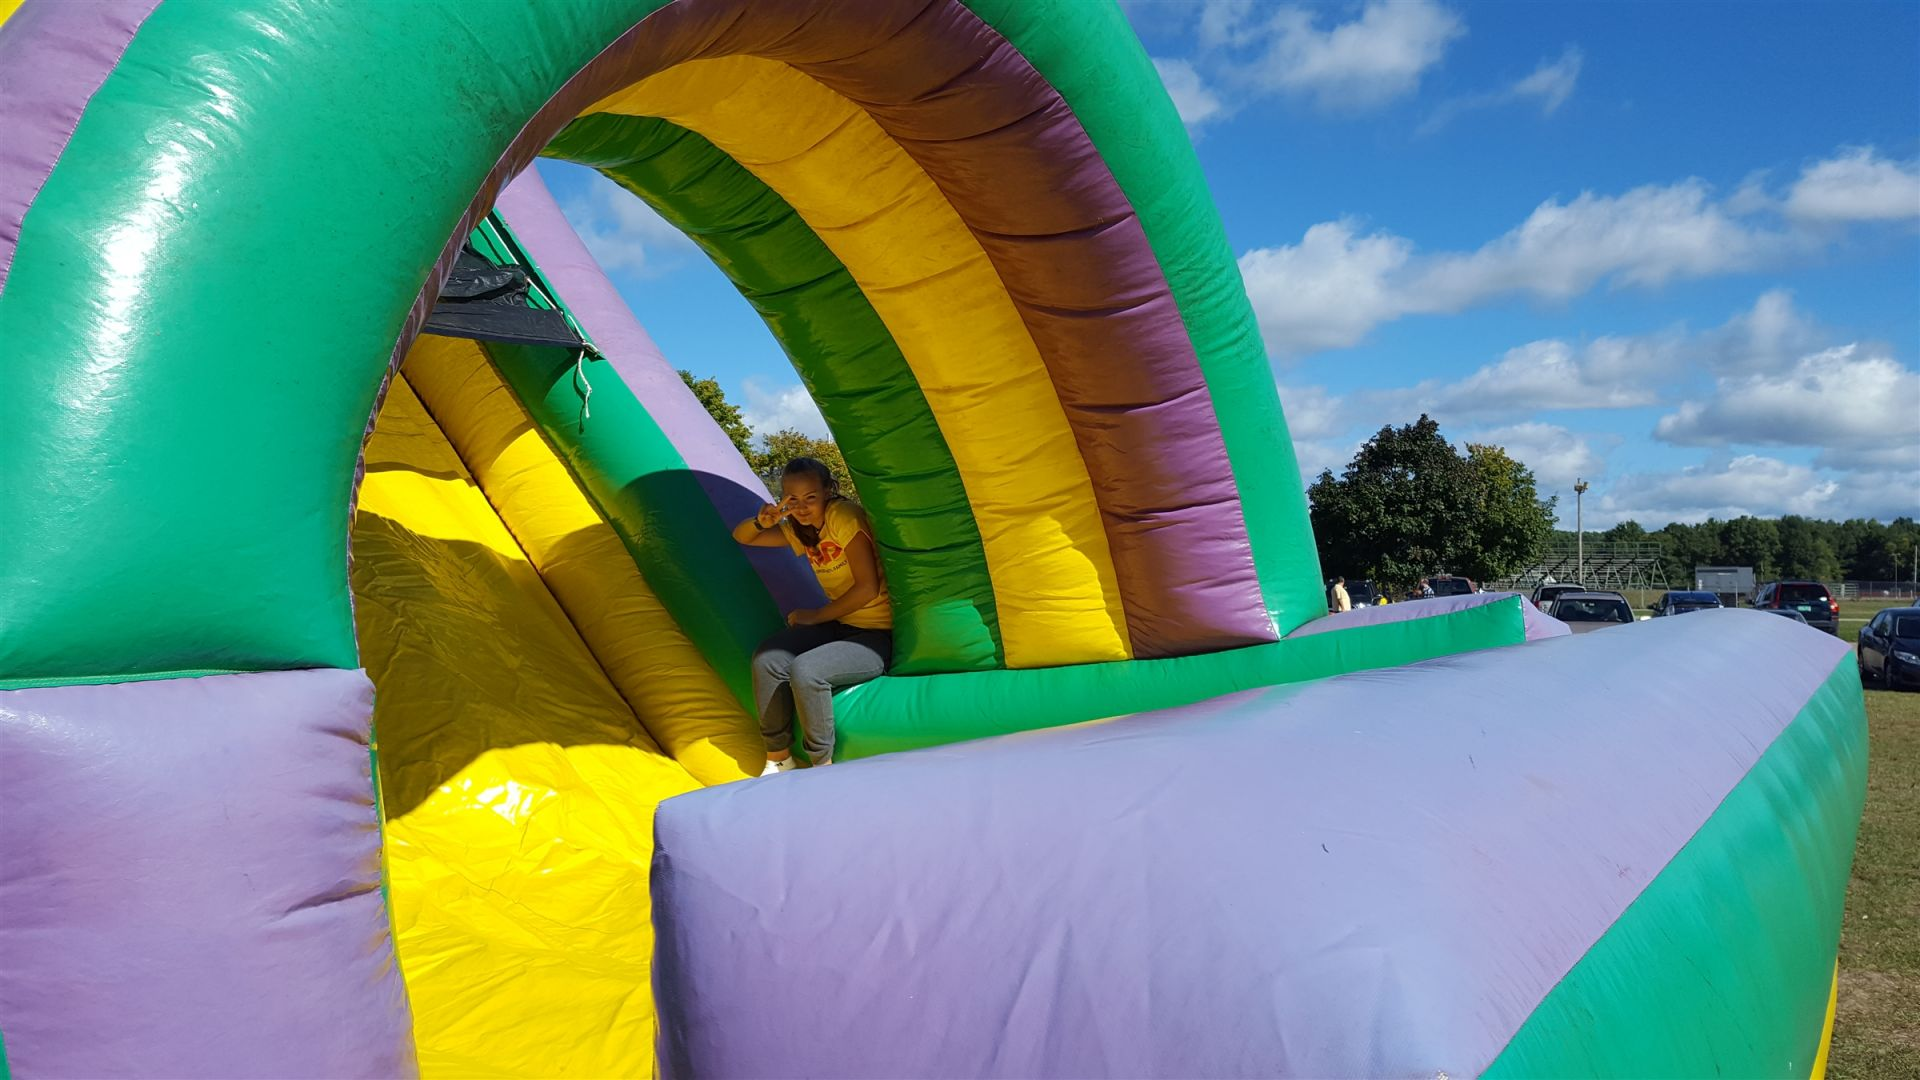 Manning the bouncy slide